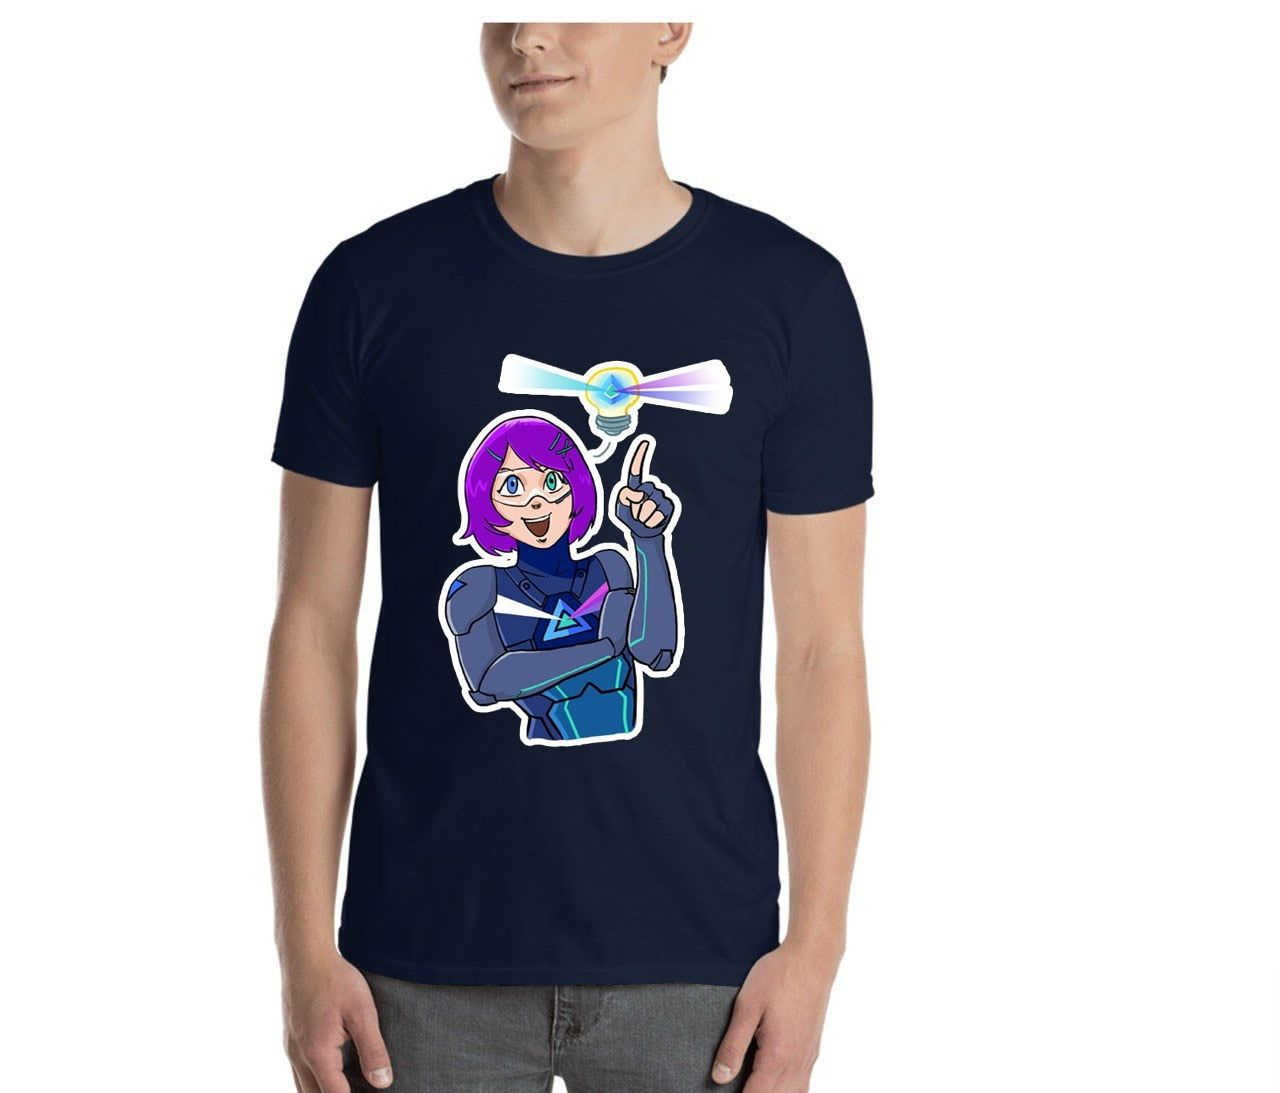 Beam Stickers T-Shirt | Send your sticker and it'll be on the T-shirt